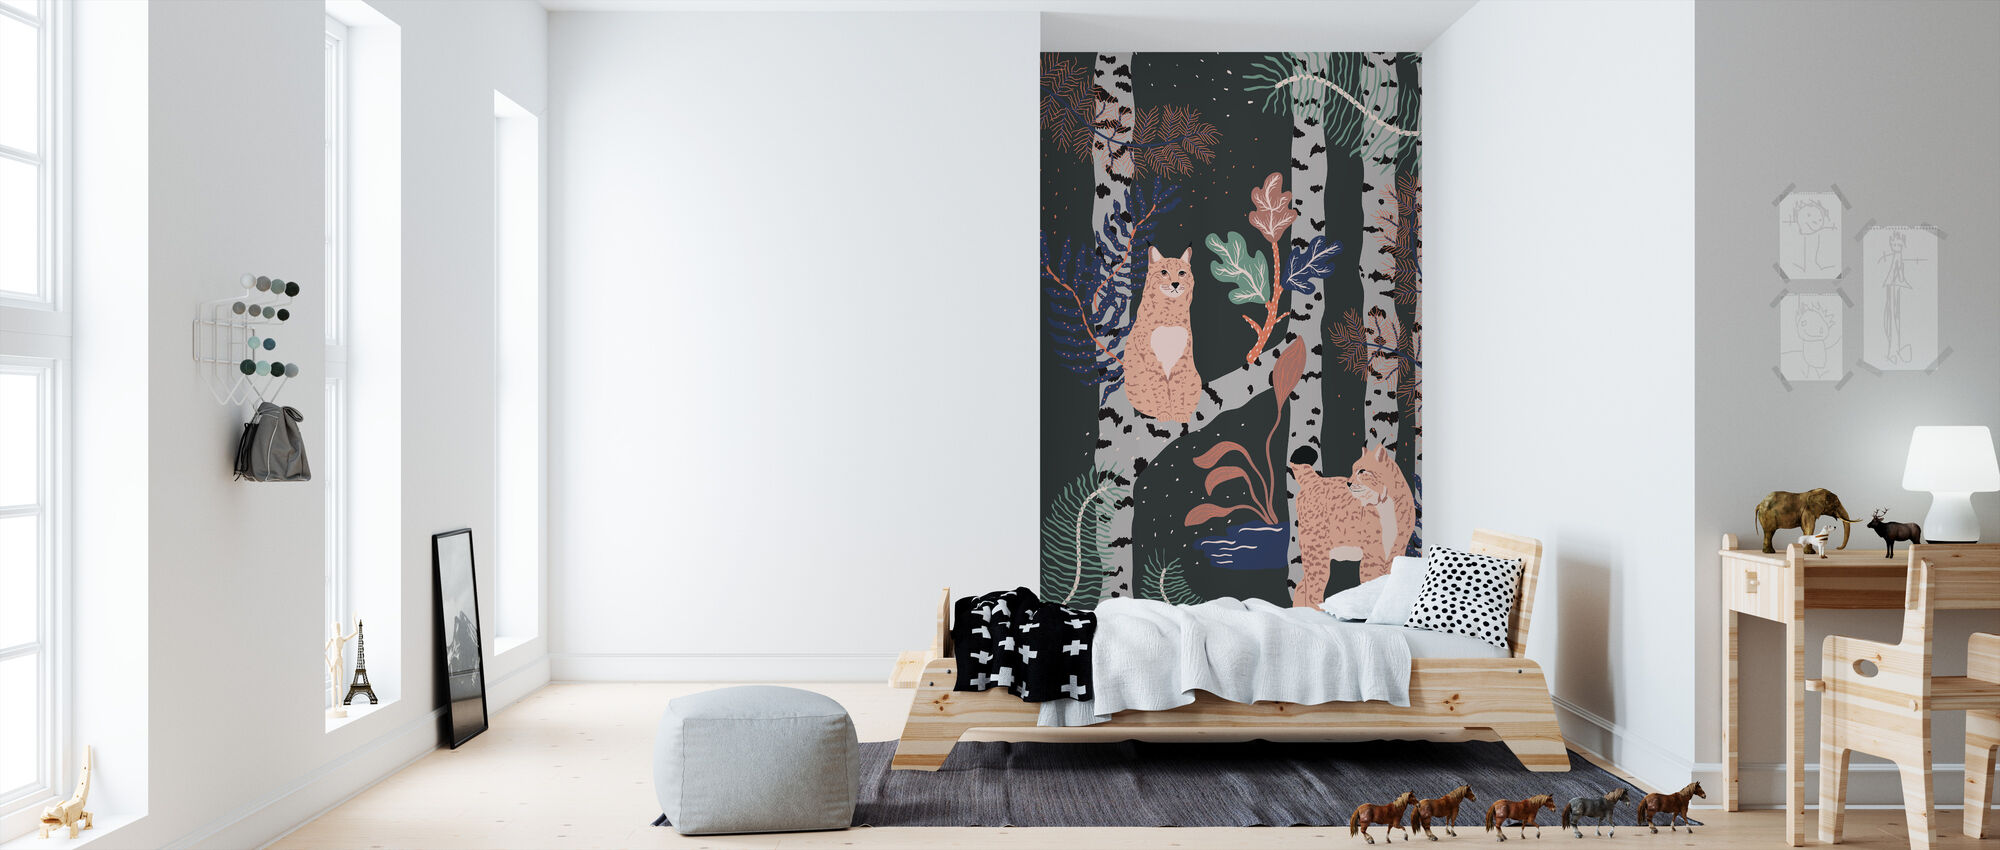 Nordic Jungle - Wallpaper - Kids Room